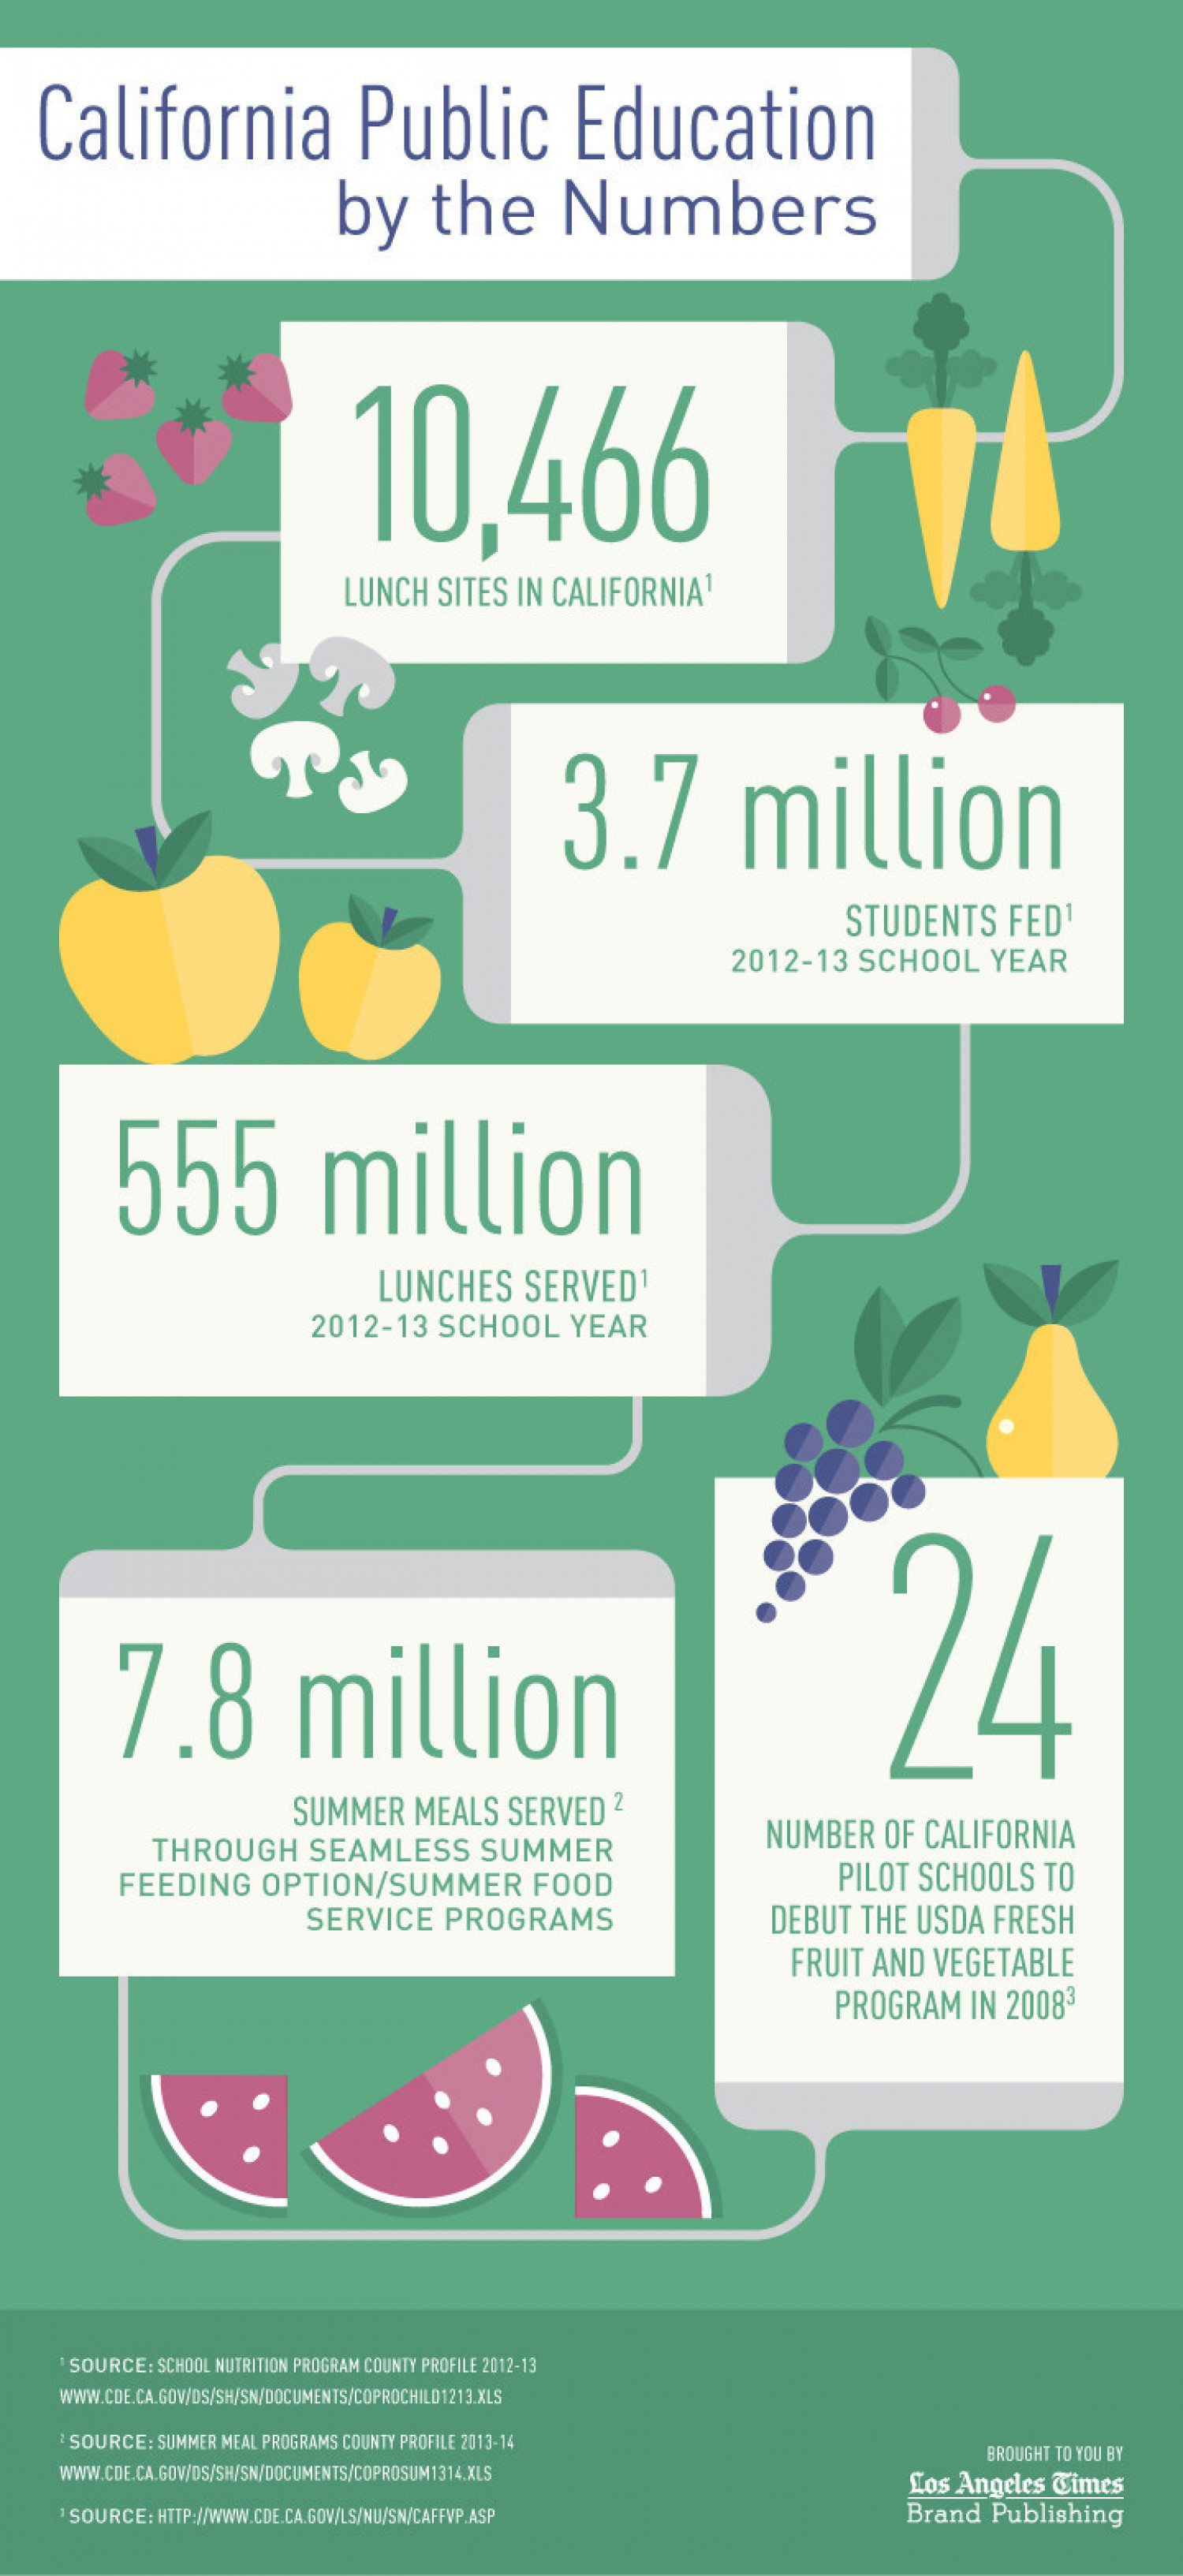 The School of Life: Meals in California Schools Infographic